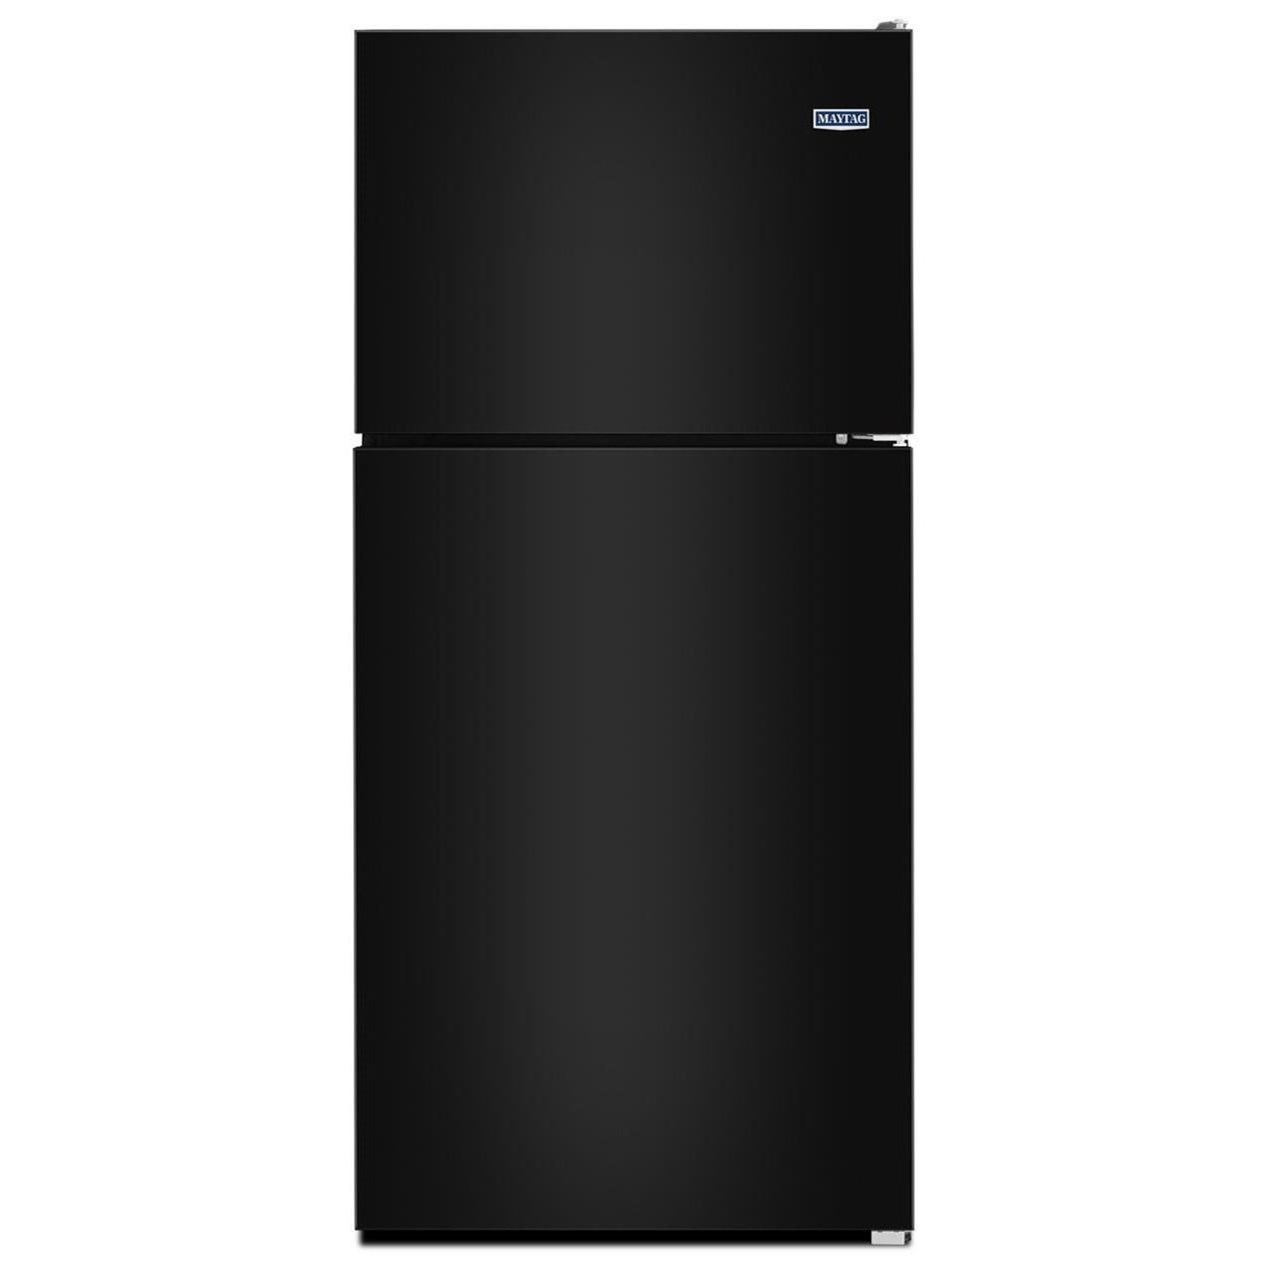 Top-Freezer Refrigerators 33-Inch Wide Top Freezer Refrigerator by Maytag at Furniture and ApplianceMart